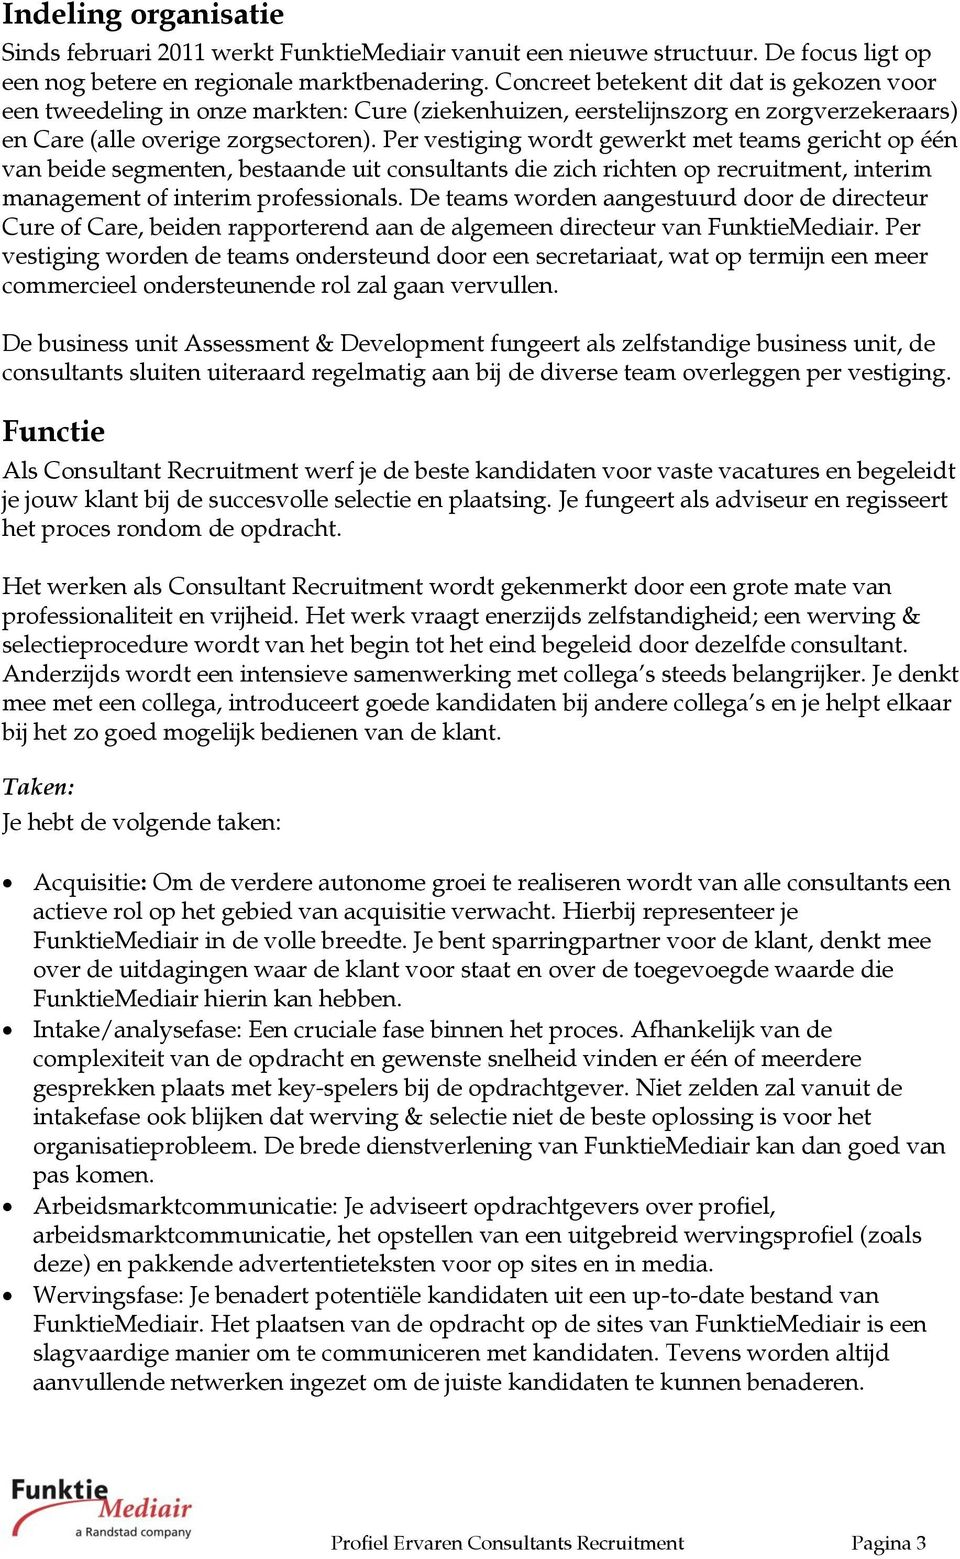 Per vestiging wordt gewerkt met teams gericht op één van beide segmenten, bestaande uit consultants die zich richten op recruitment, interim management of interim professionals.